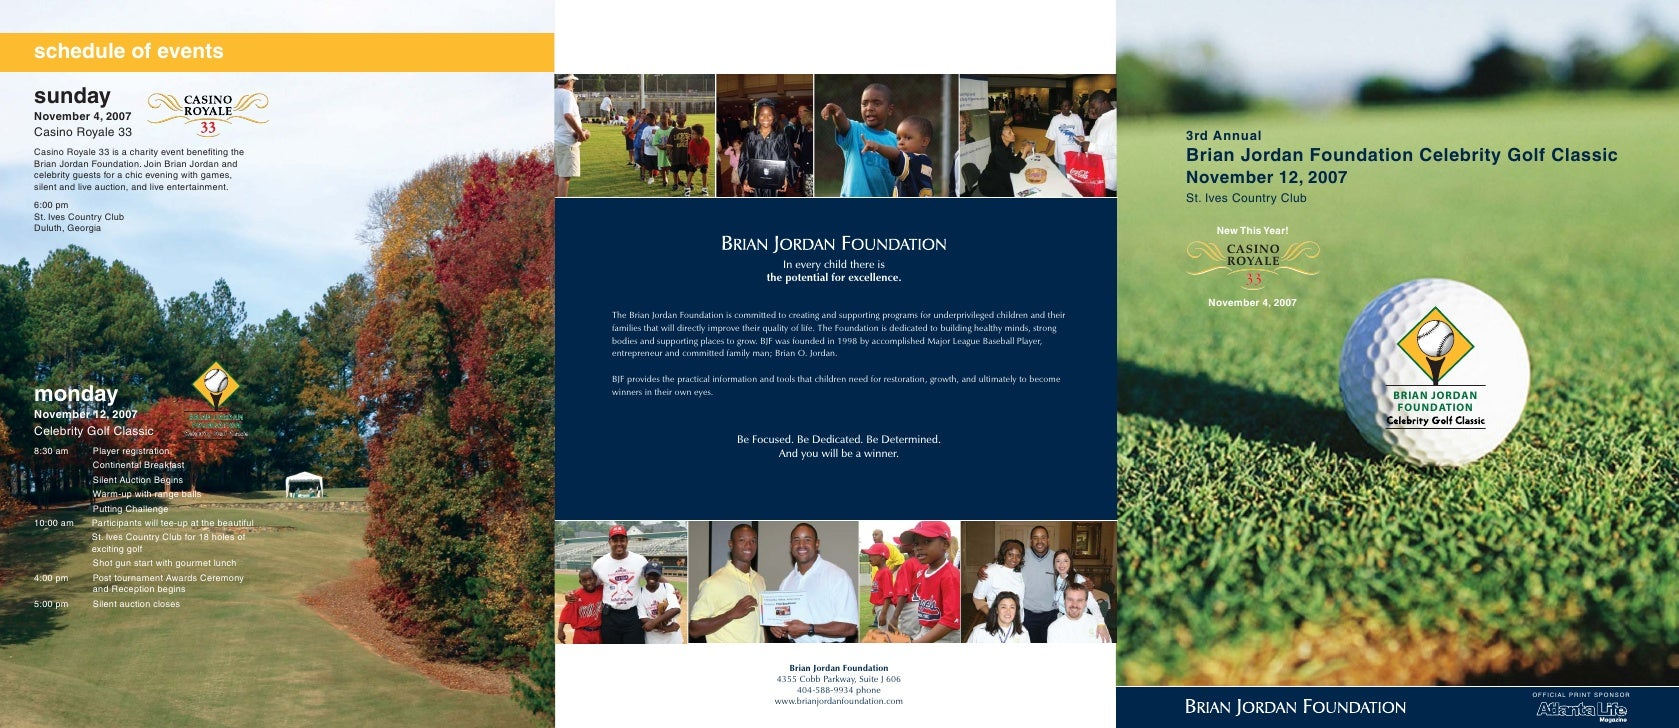 3rd Annual Brian Jordan Foundation Celebrity Golf Classic November 12, 2007 St. Ives Country Club    Q_P      New This Yea...